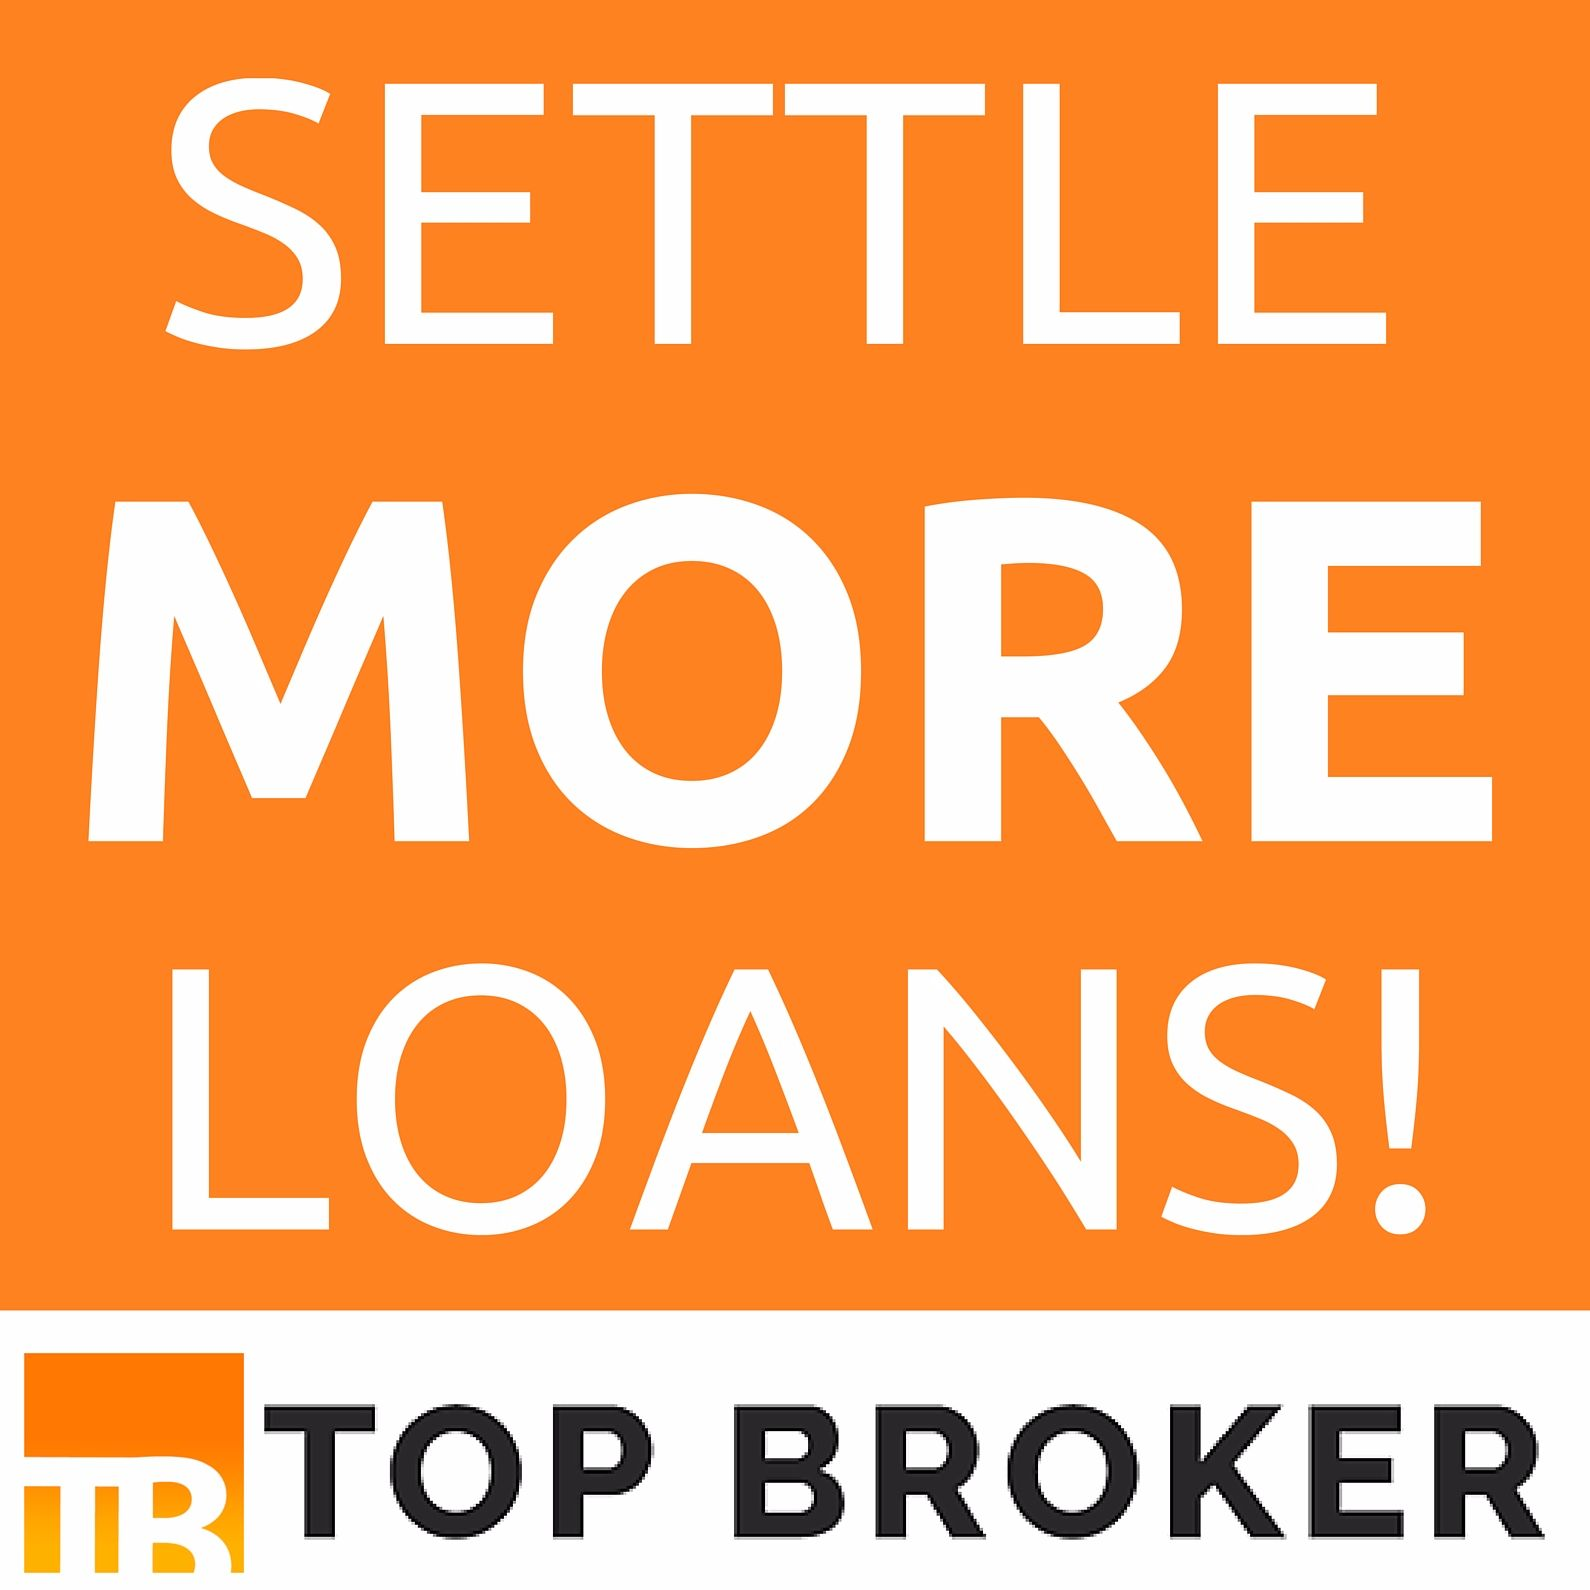 Mortgage Brokers - Settle More Loans!